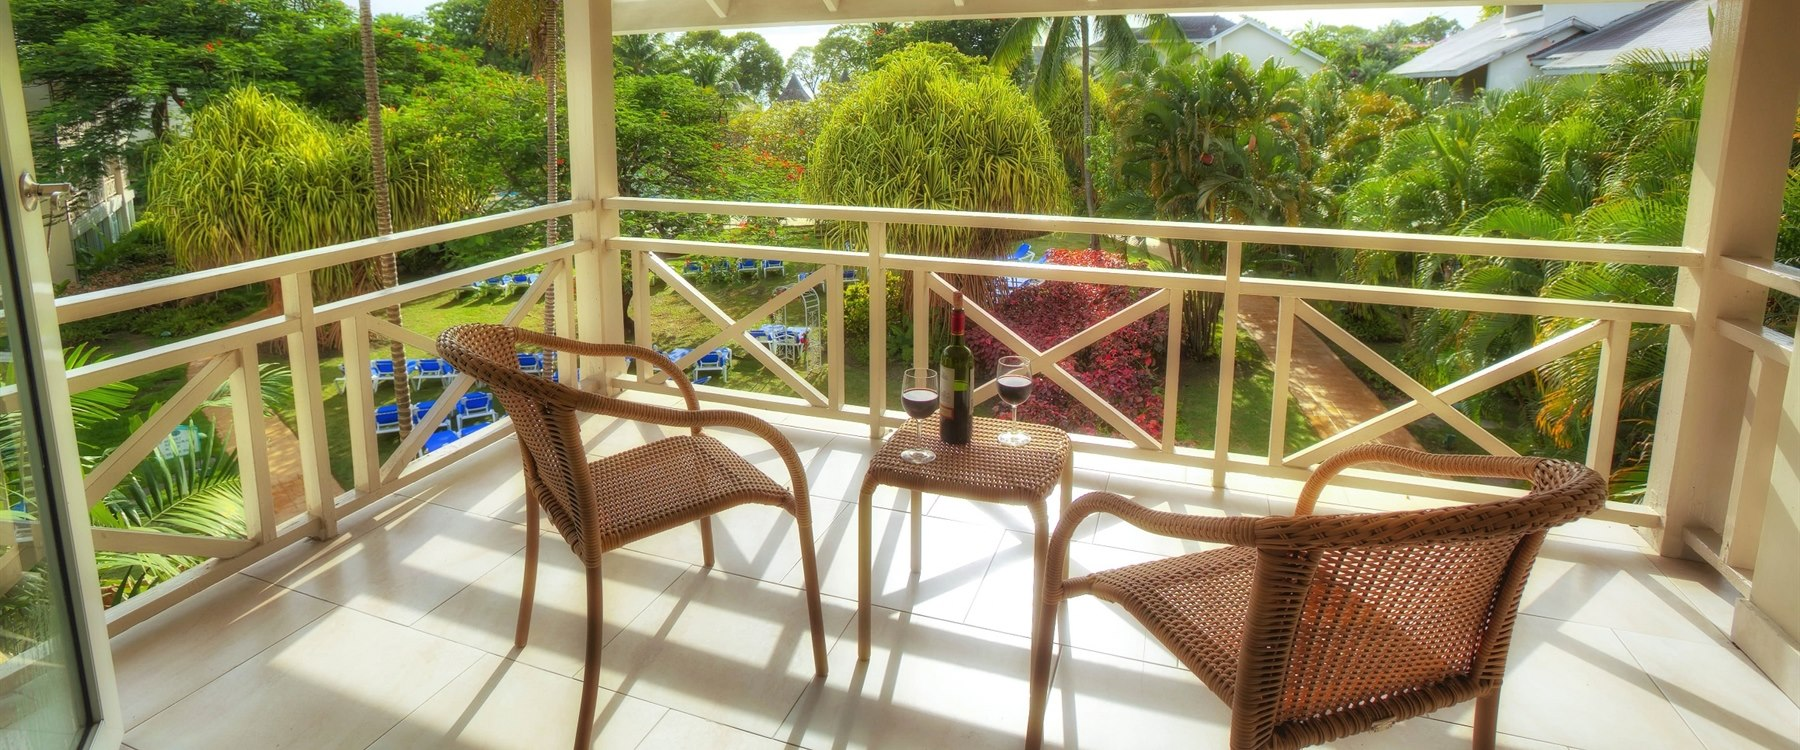 Balcony with Garden View at The Club Barbados